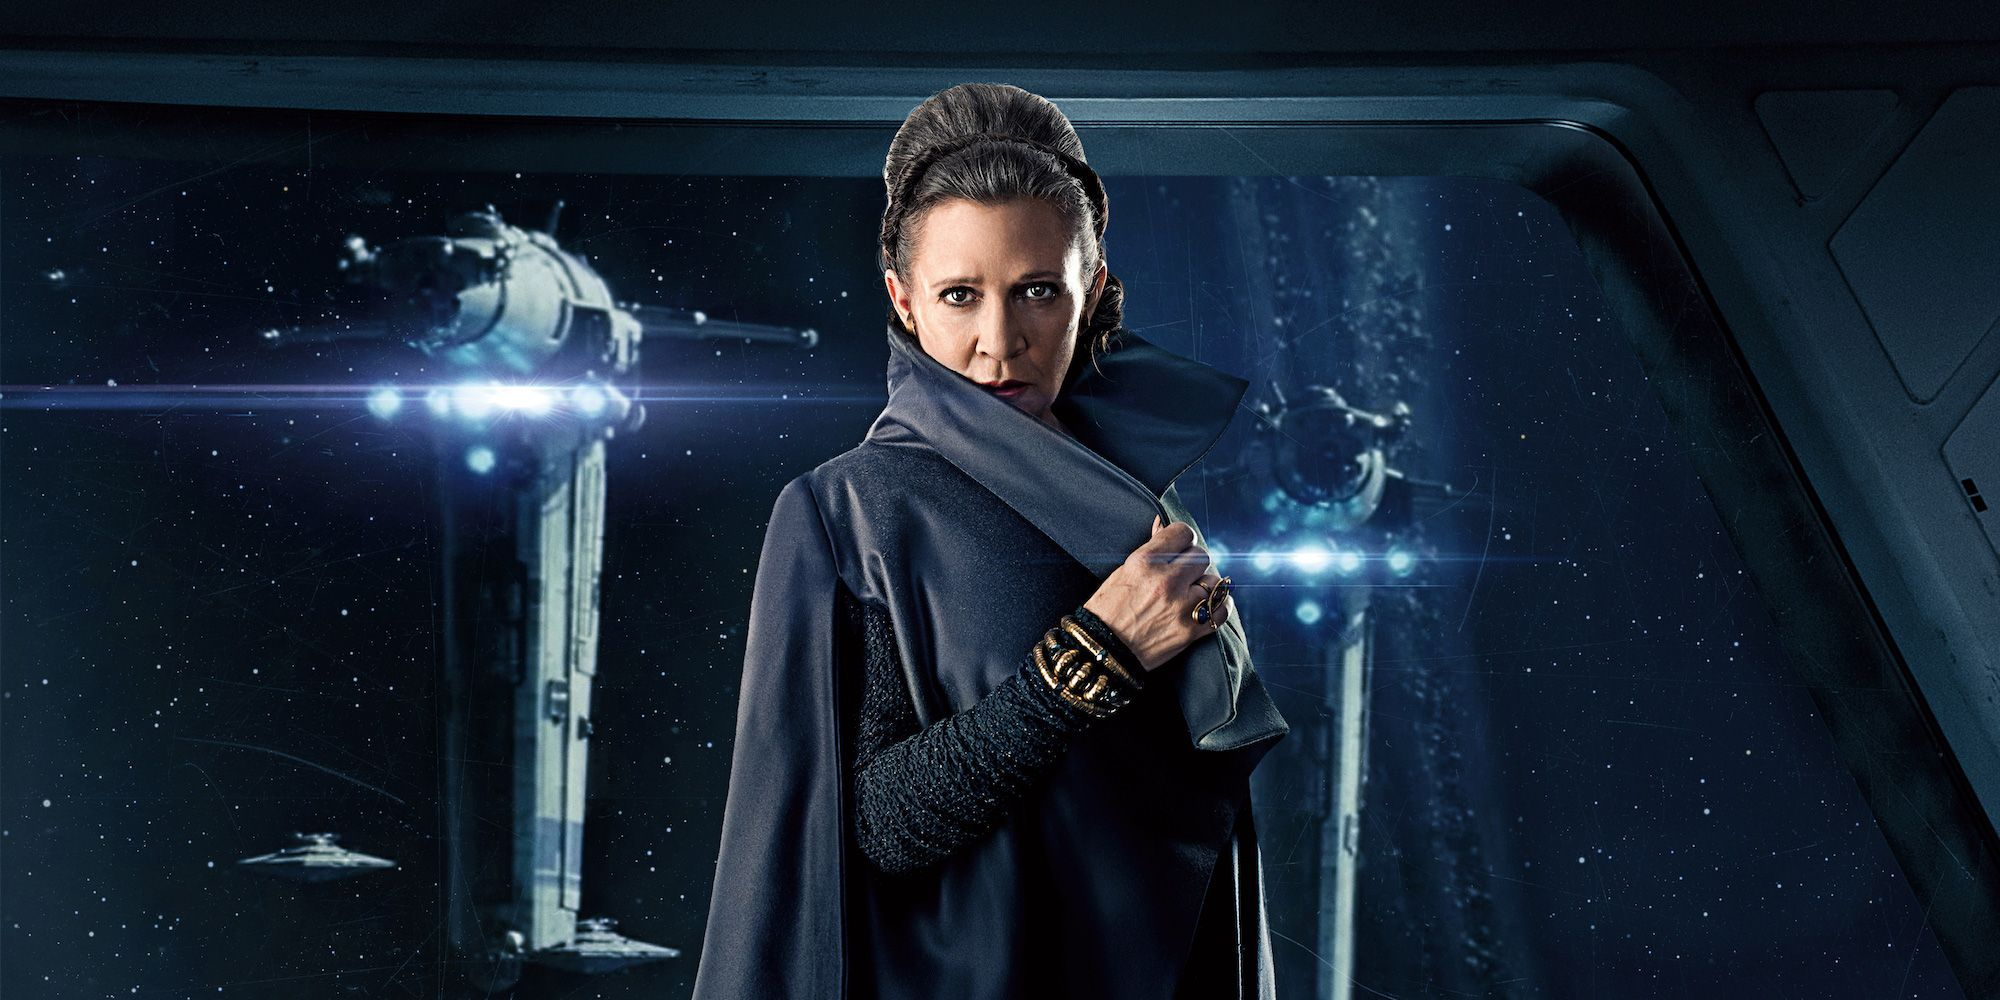 The Last Jedi Star Wars Toys : Hot toys unveils new leia figure for the last jedi